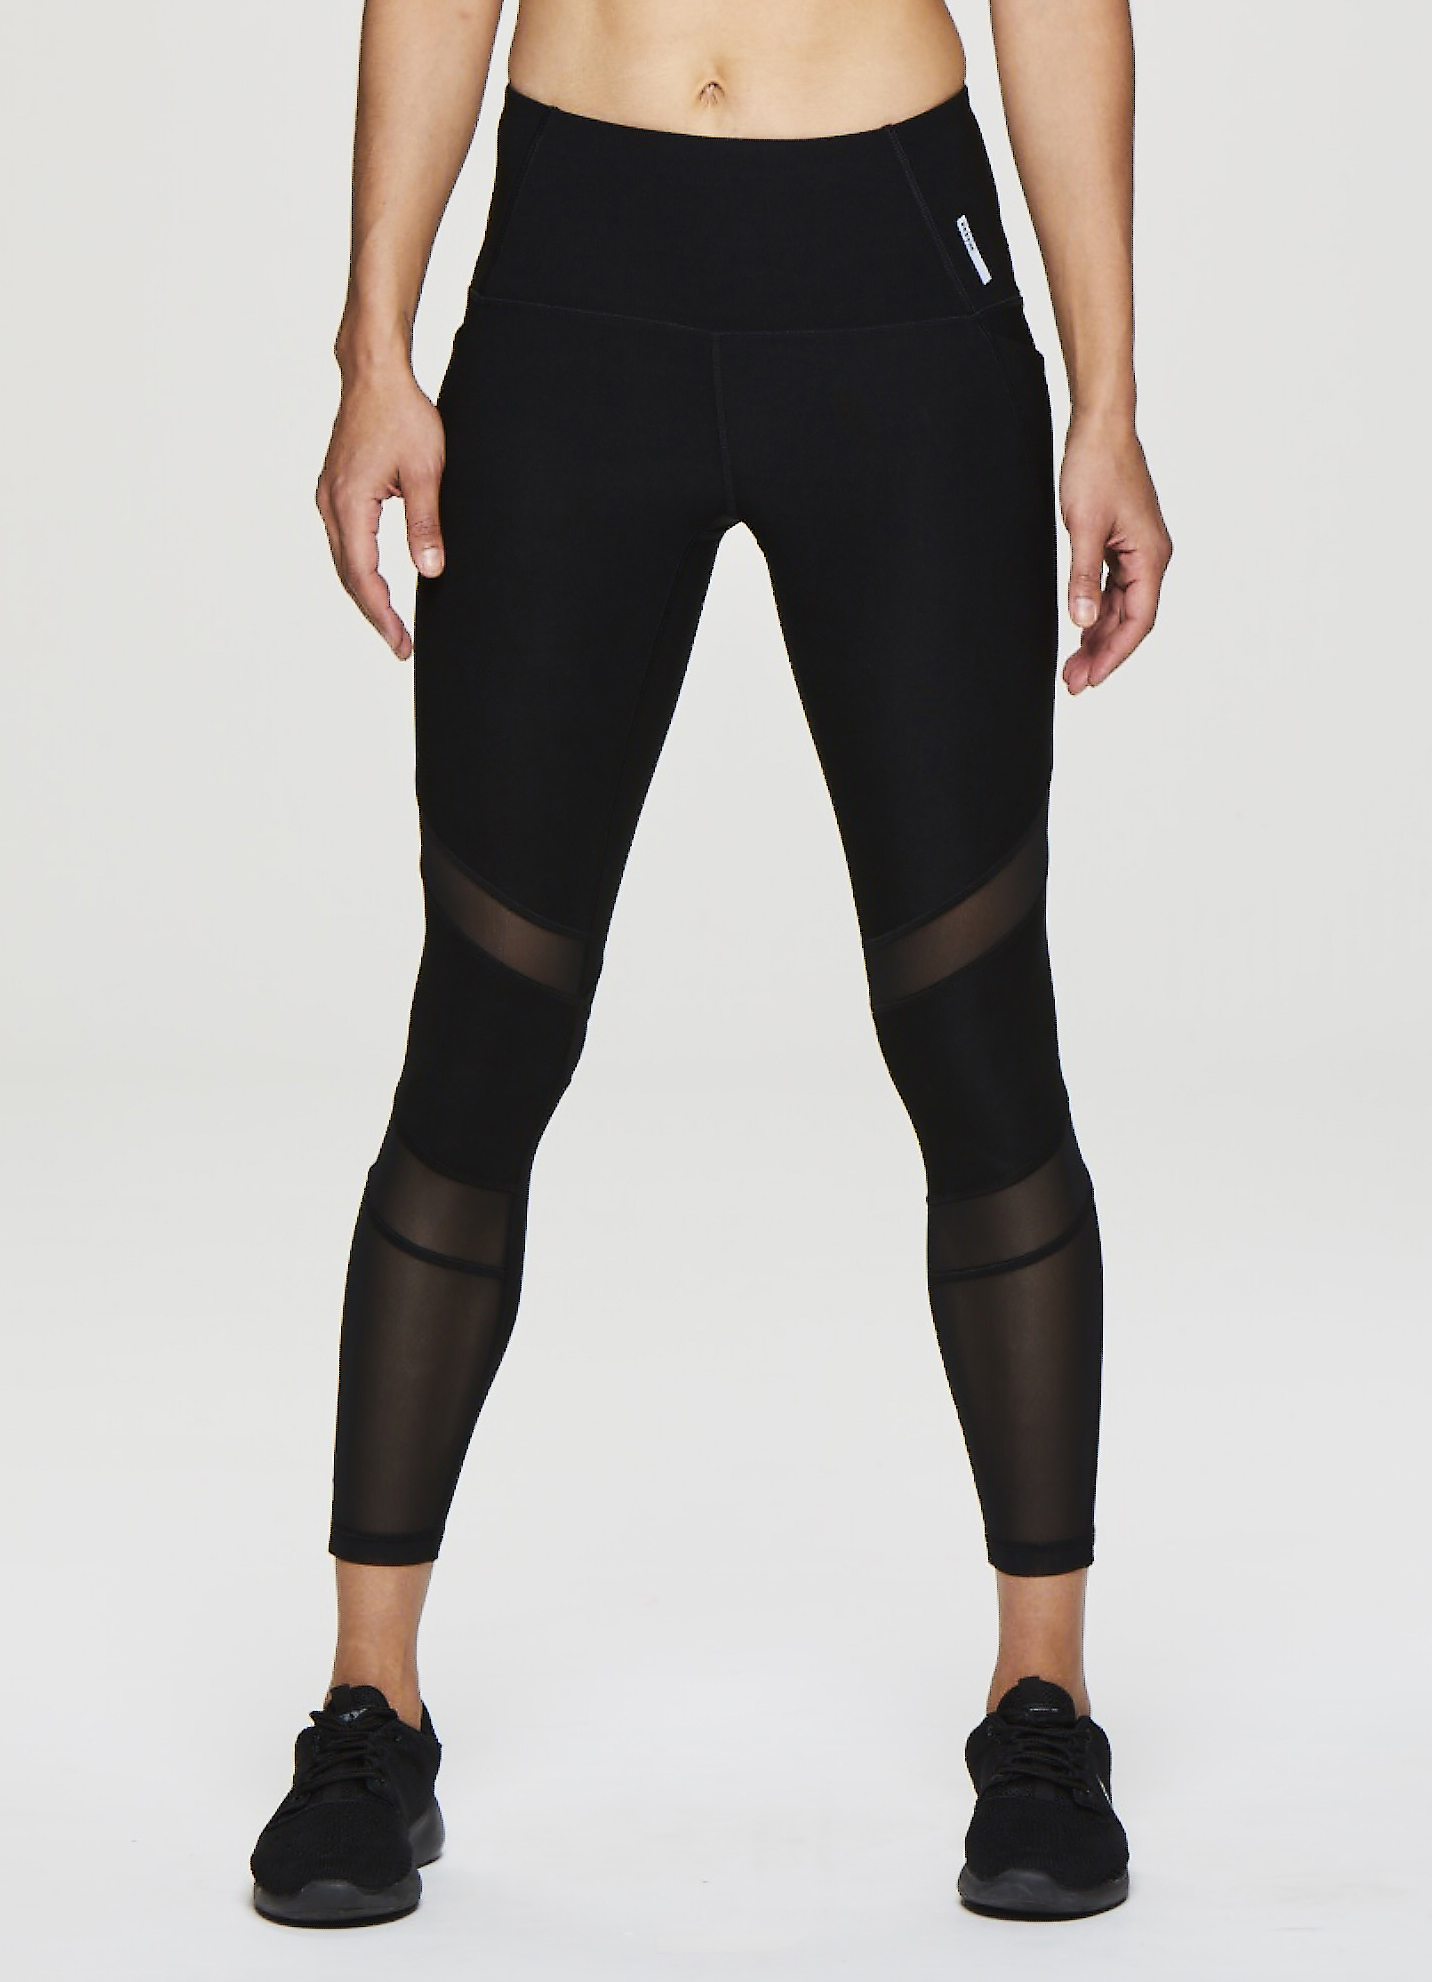 Women's Active 7/8 Ankle Length Leggings with Side Pocket